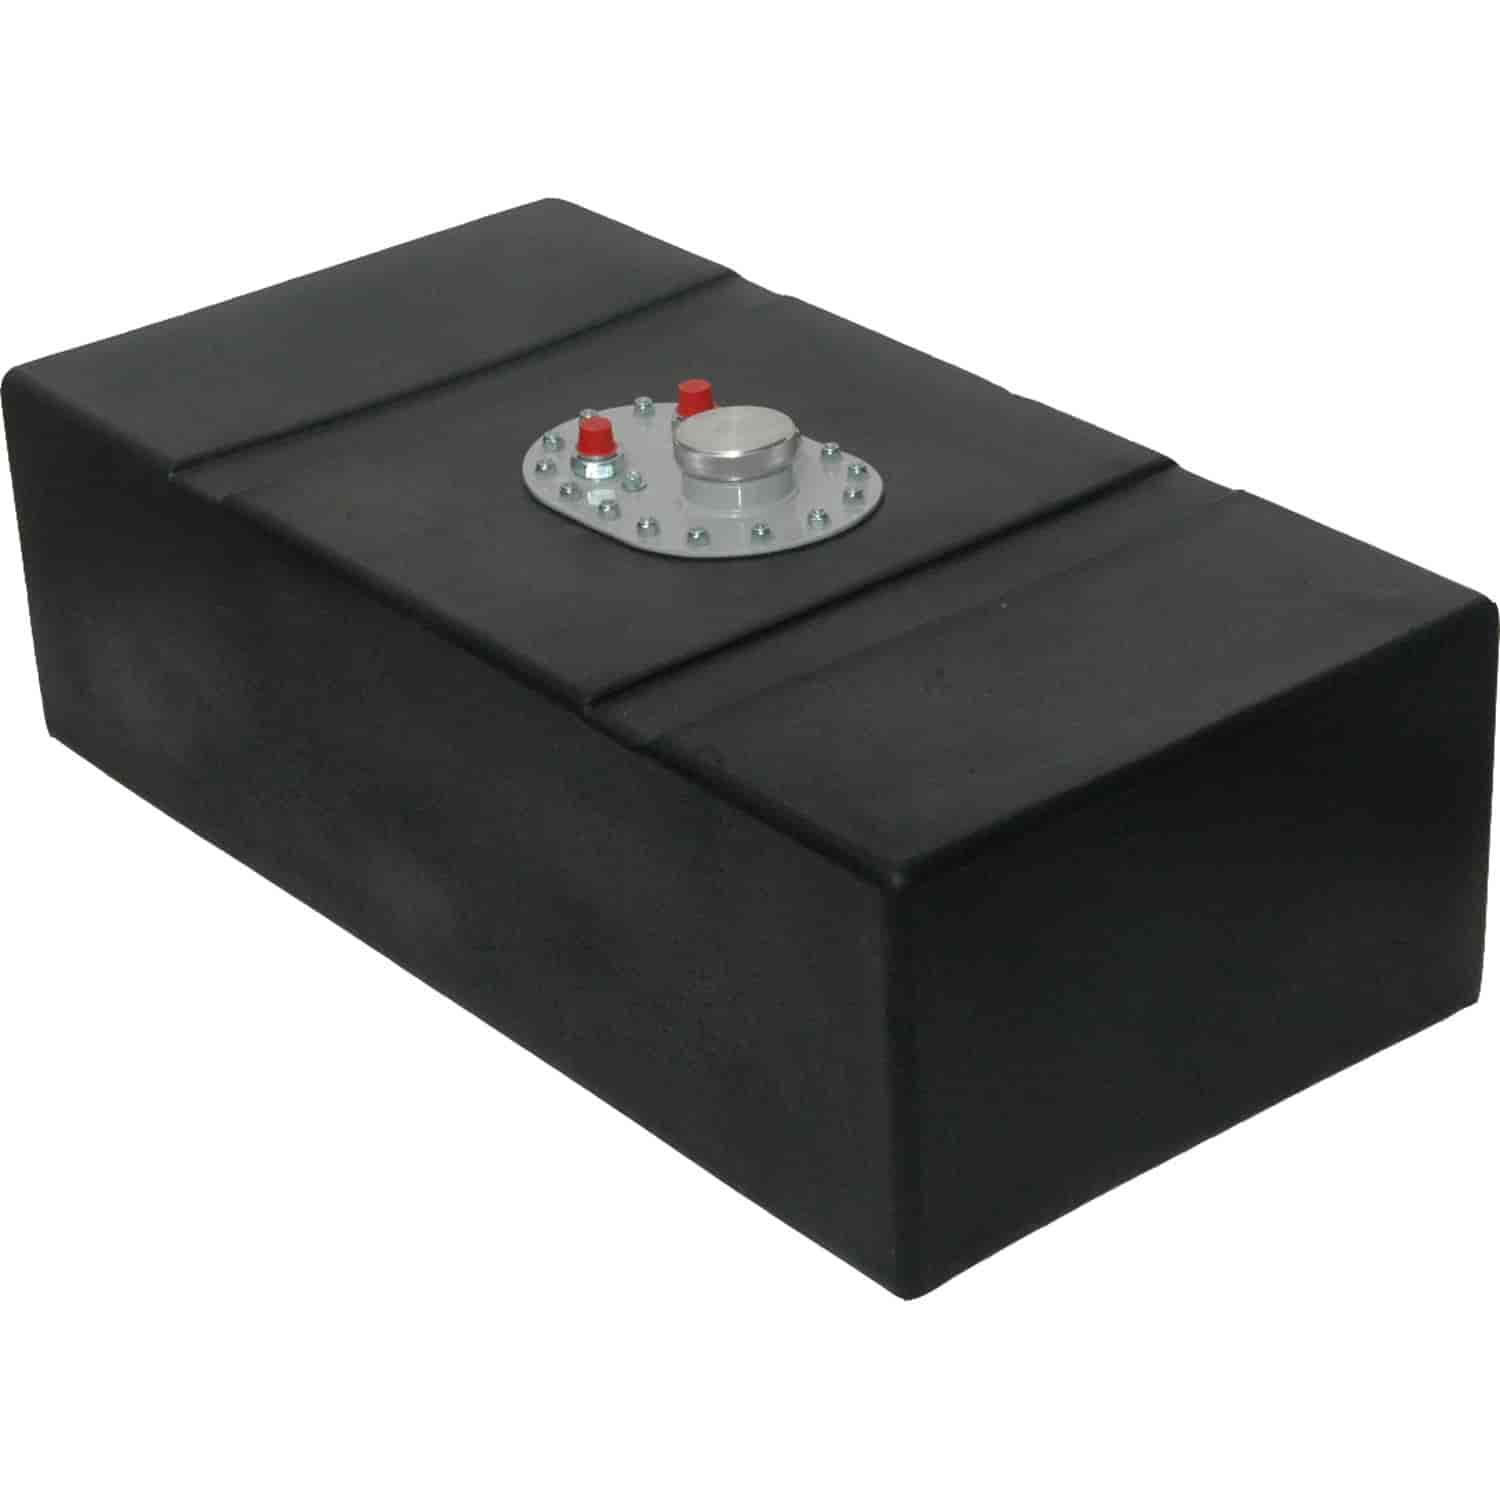 RCI Black Circle Track Fuel Cell Capacity: 22 gallons